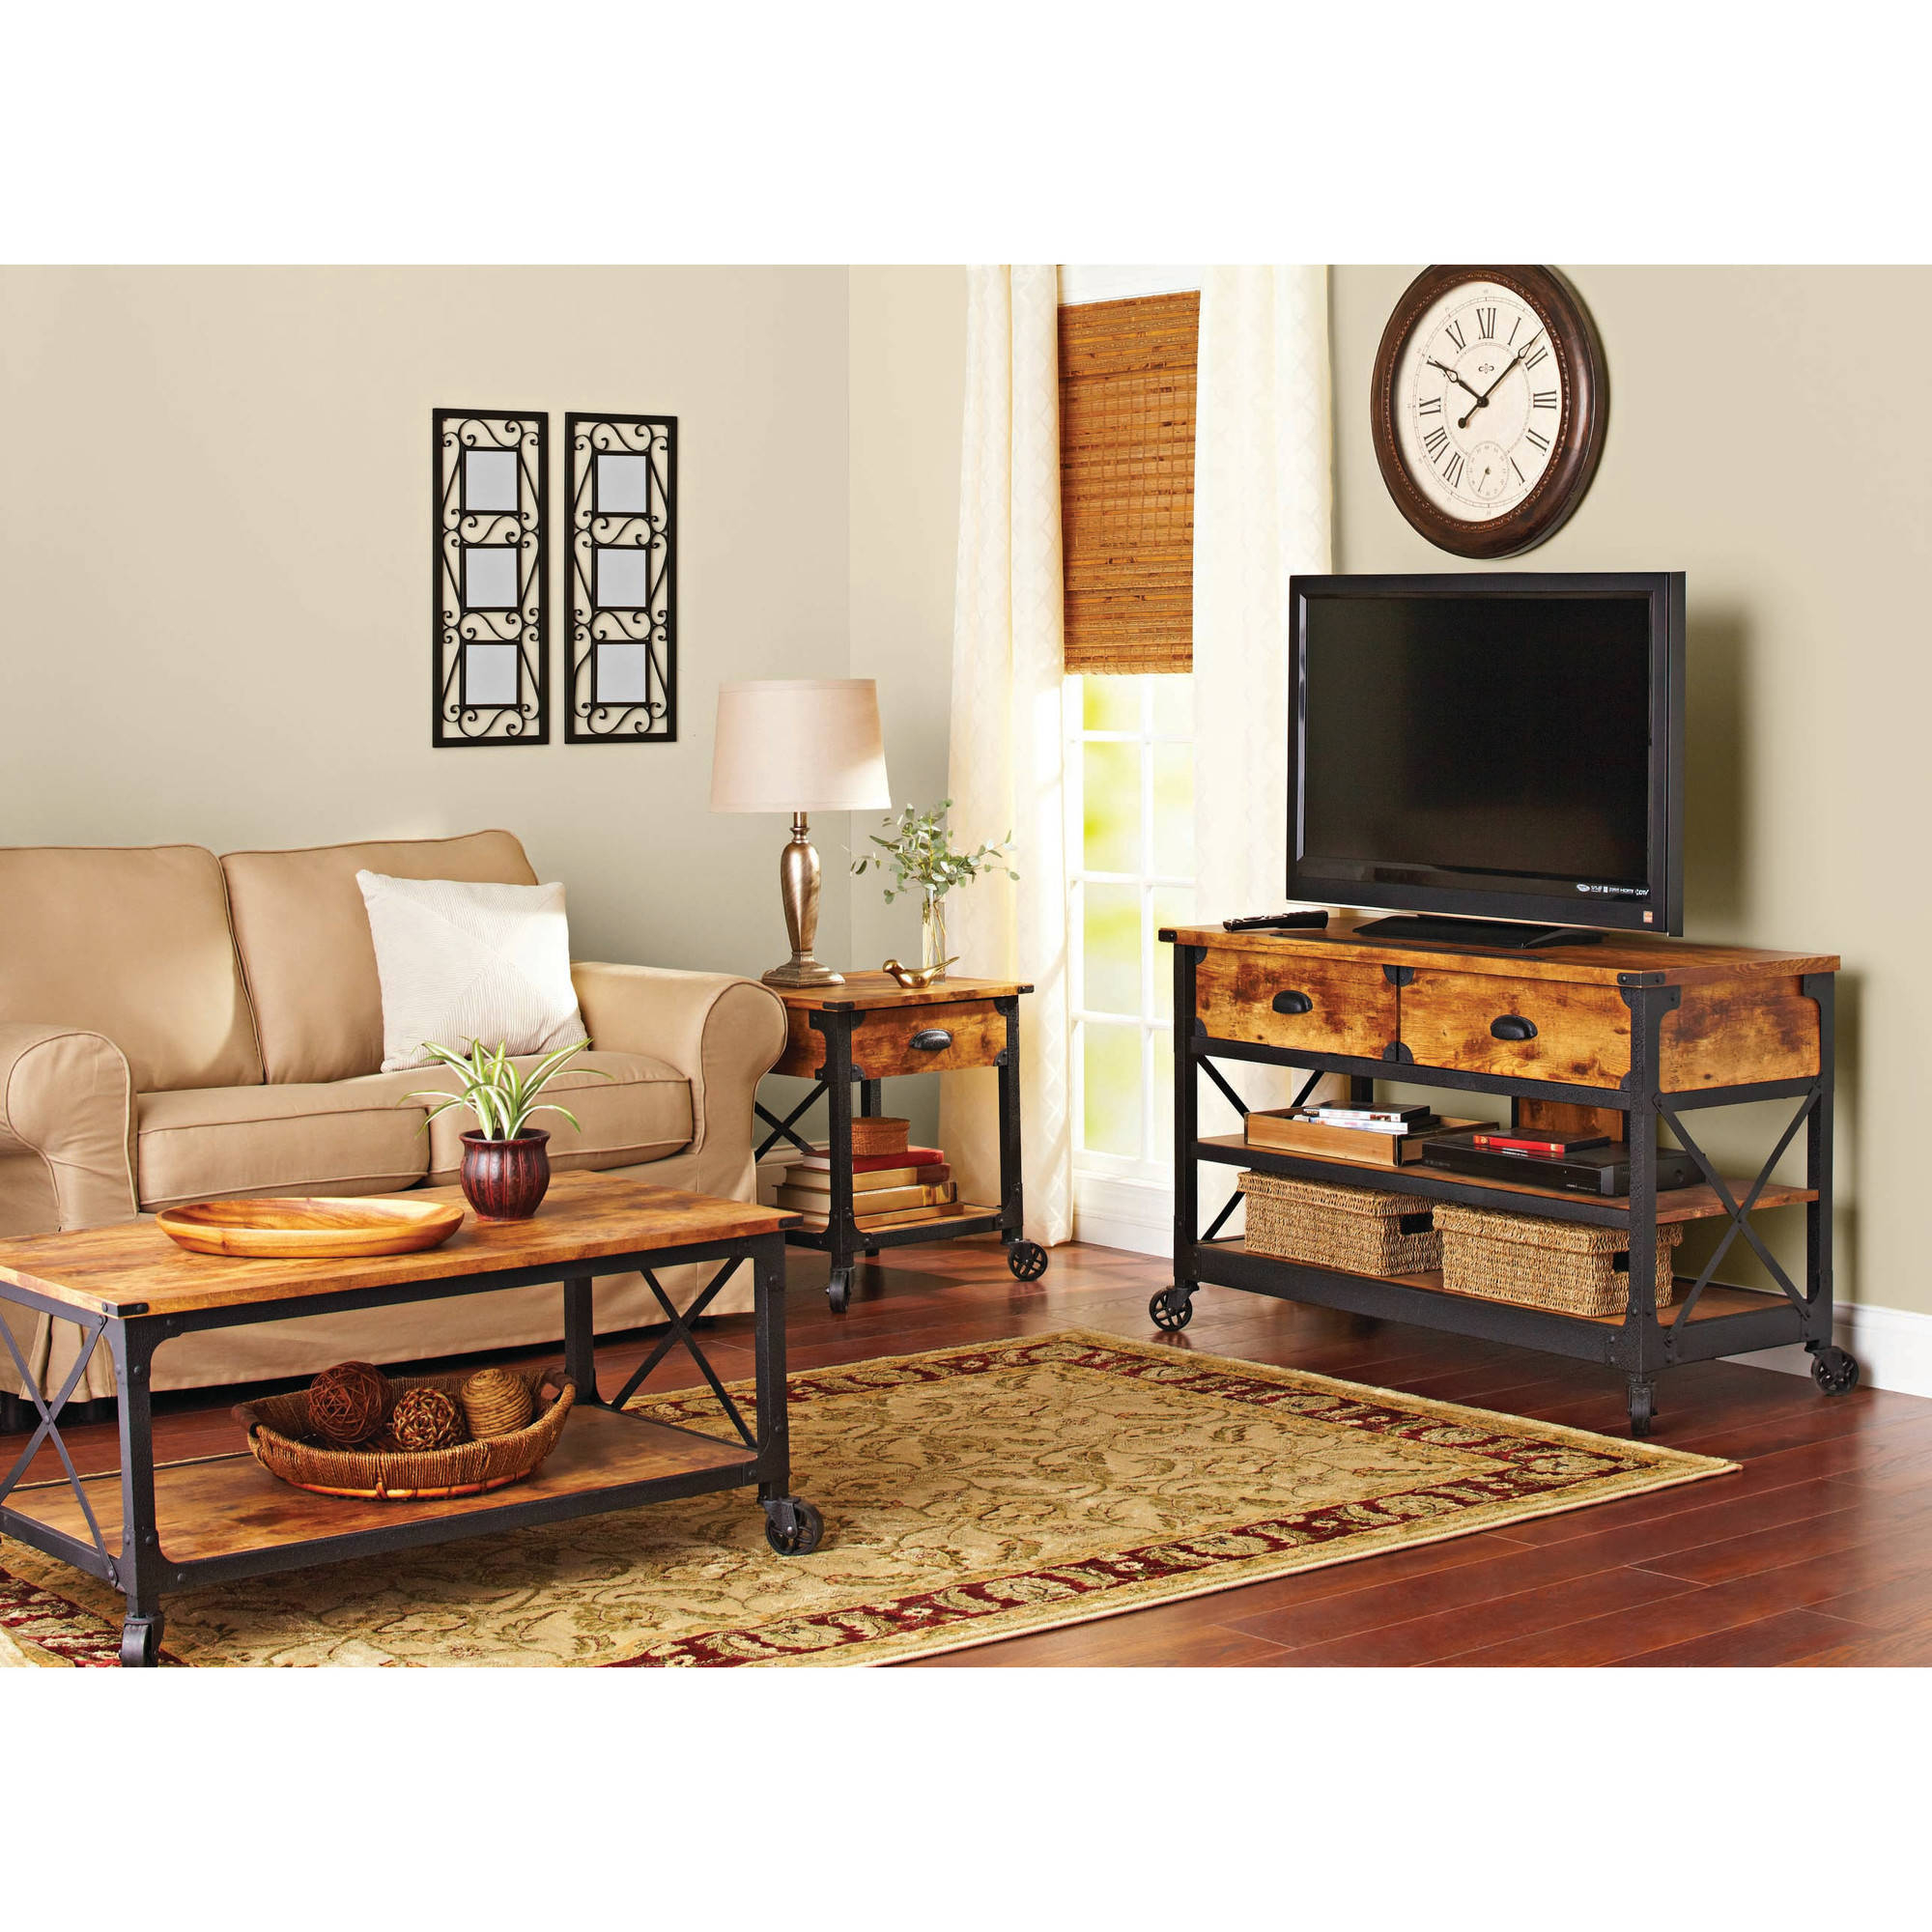 Better Homes And Gardens Rustic Country Living Room Set Walmart in 10 Clever Initiatives of How to Craft Living Room Sets With Tv